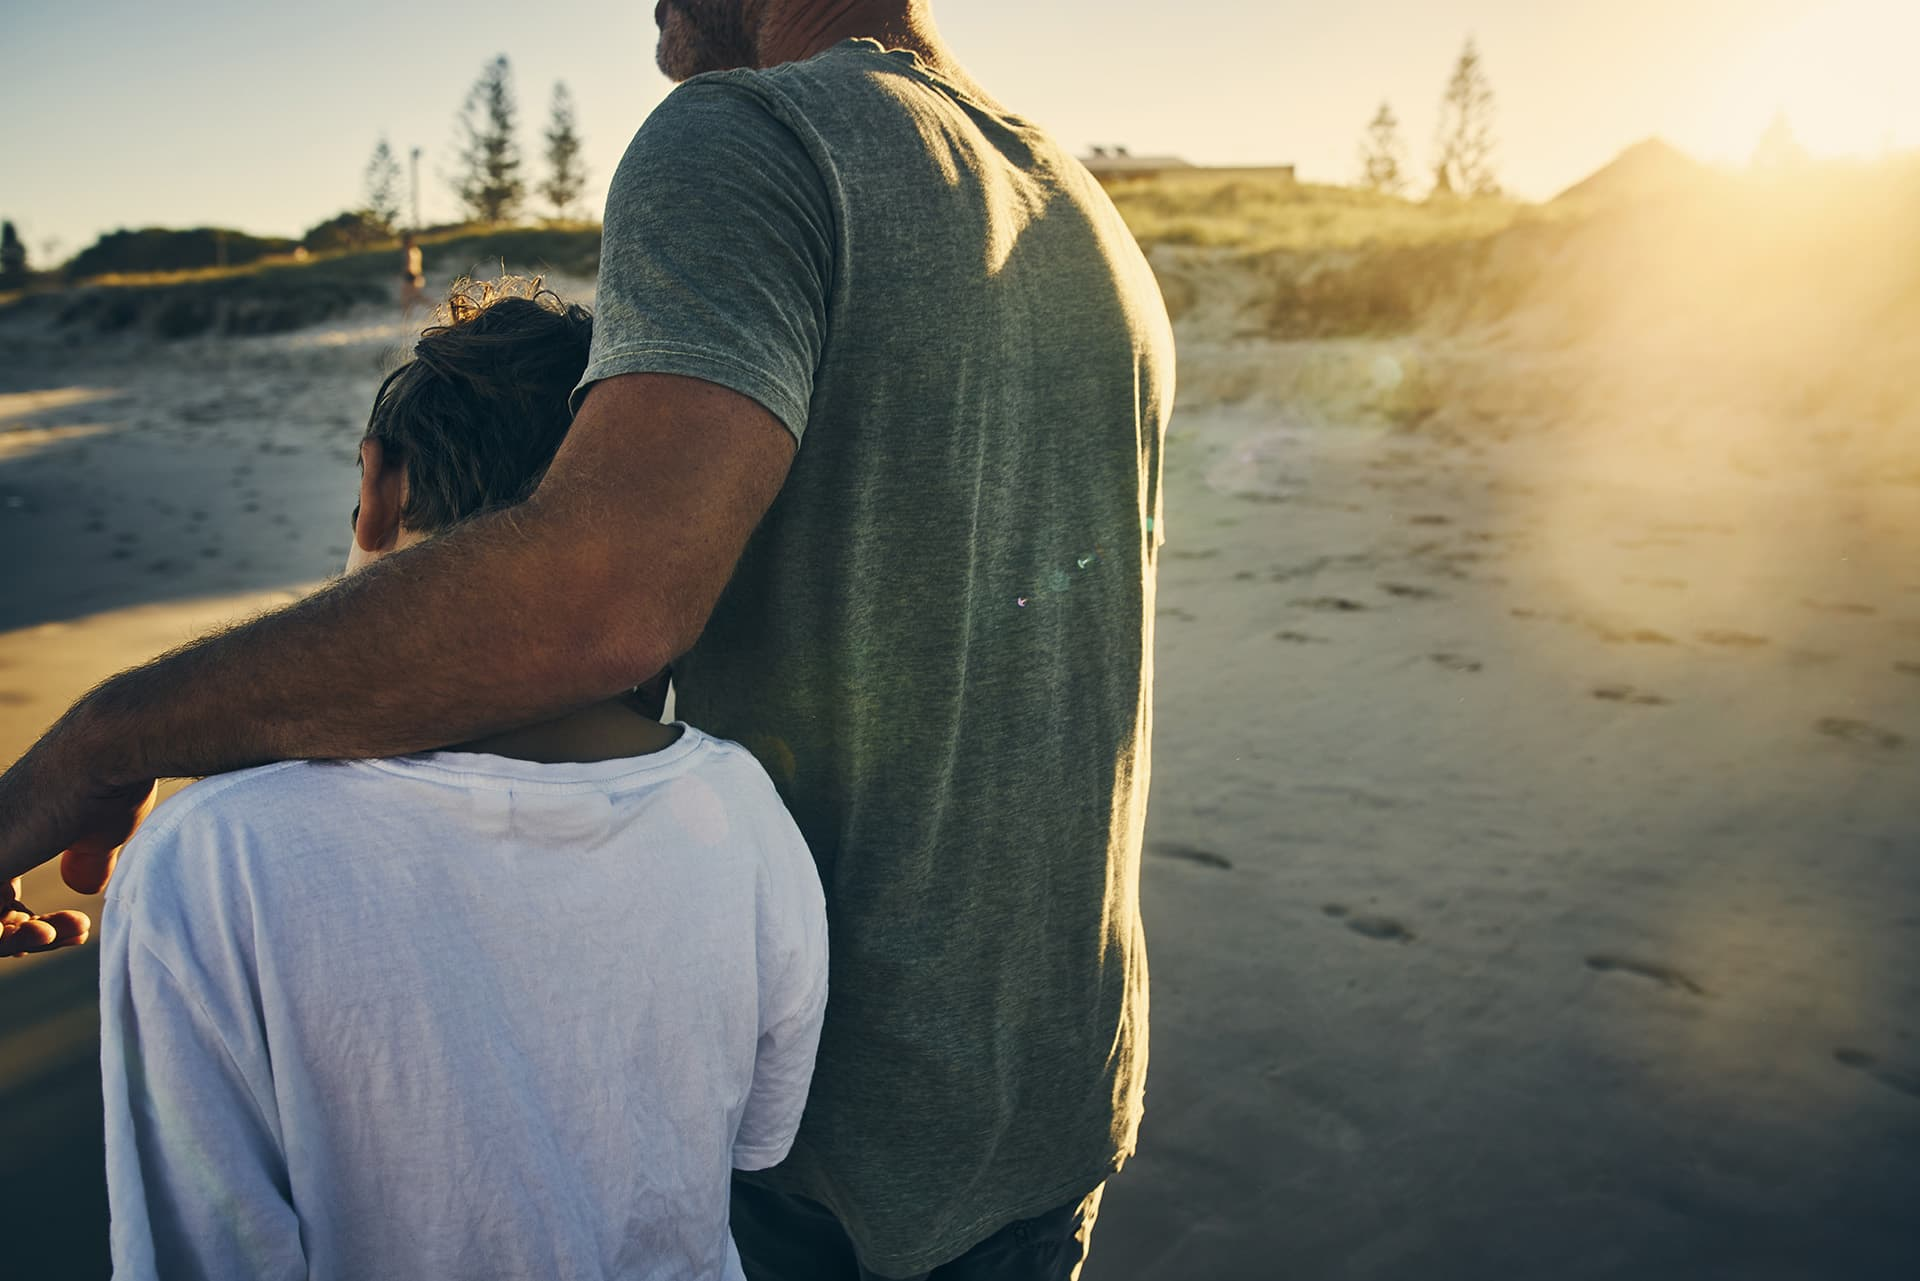 Universal life insurance for a father with his arm around his son walking on sand